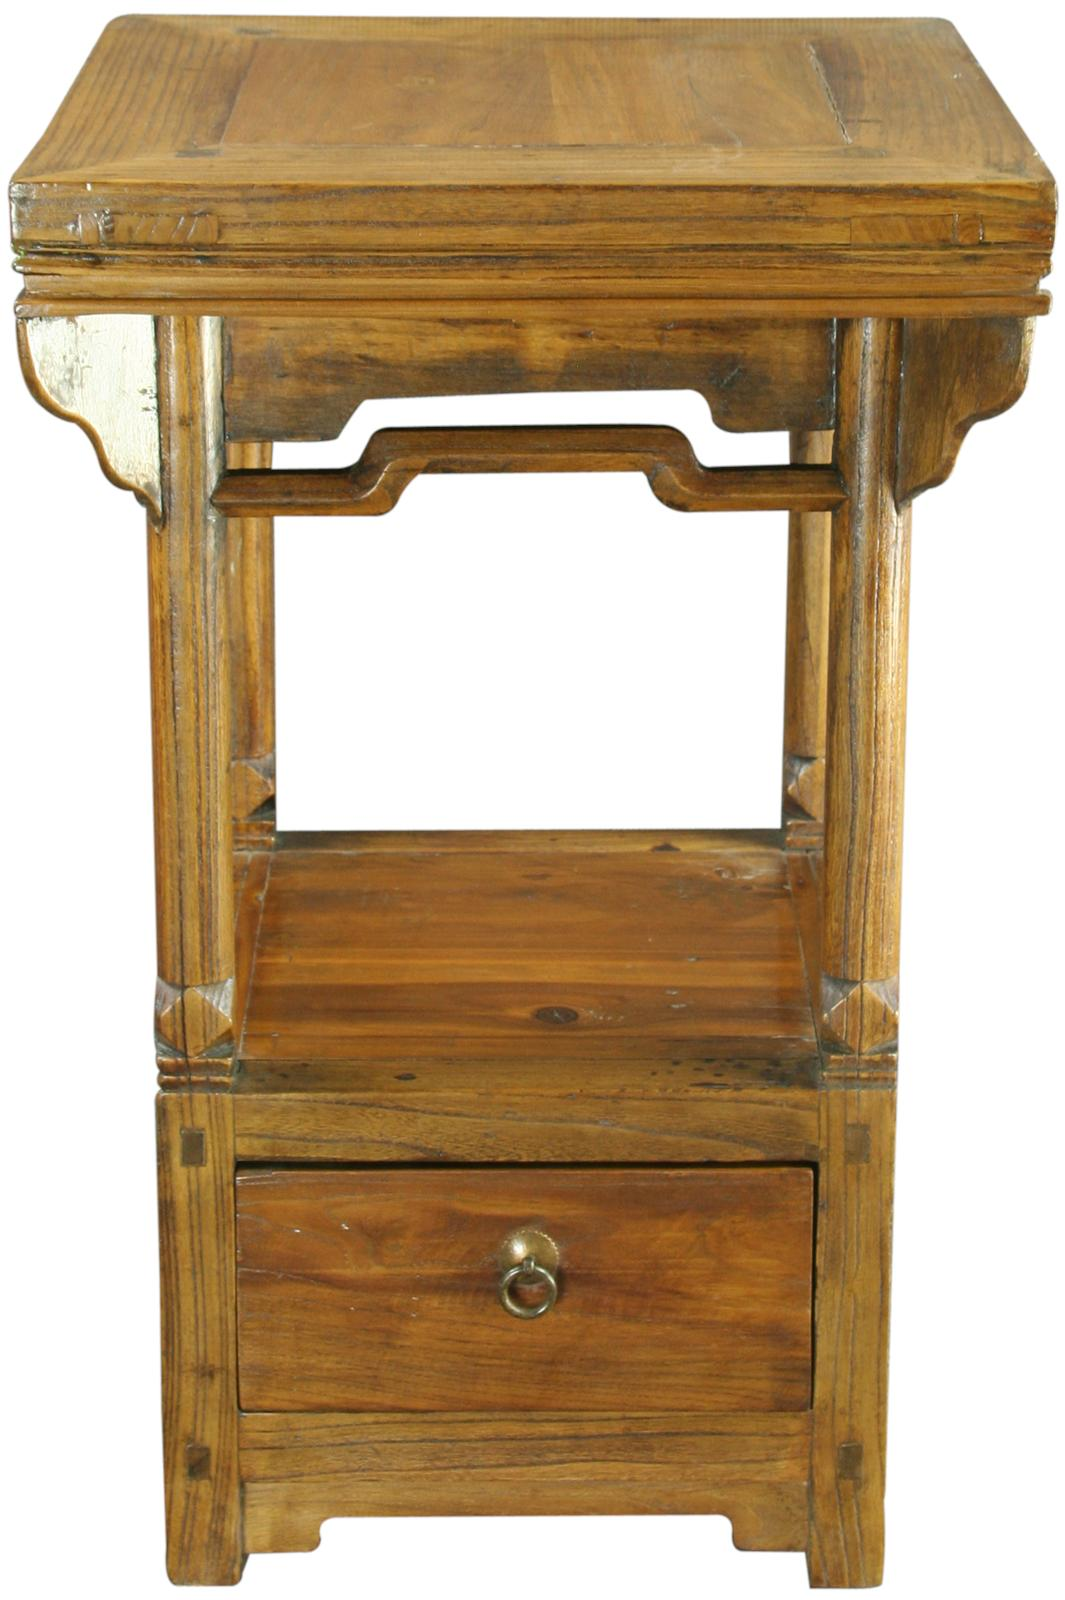 Old Bedside Table: ANTIQUE CHINESE ACCENT TABLE NIGHTSTAND BEDSIDE TABLE